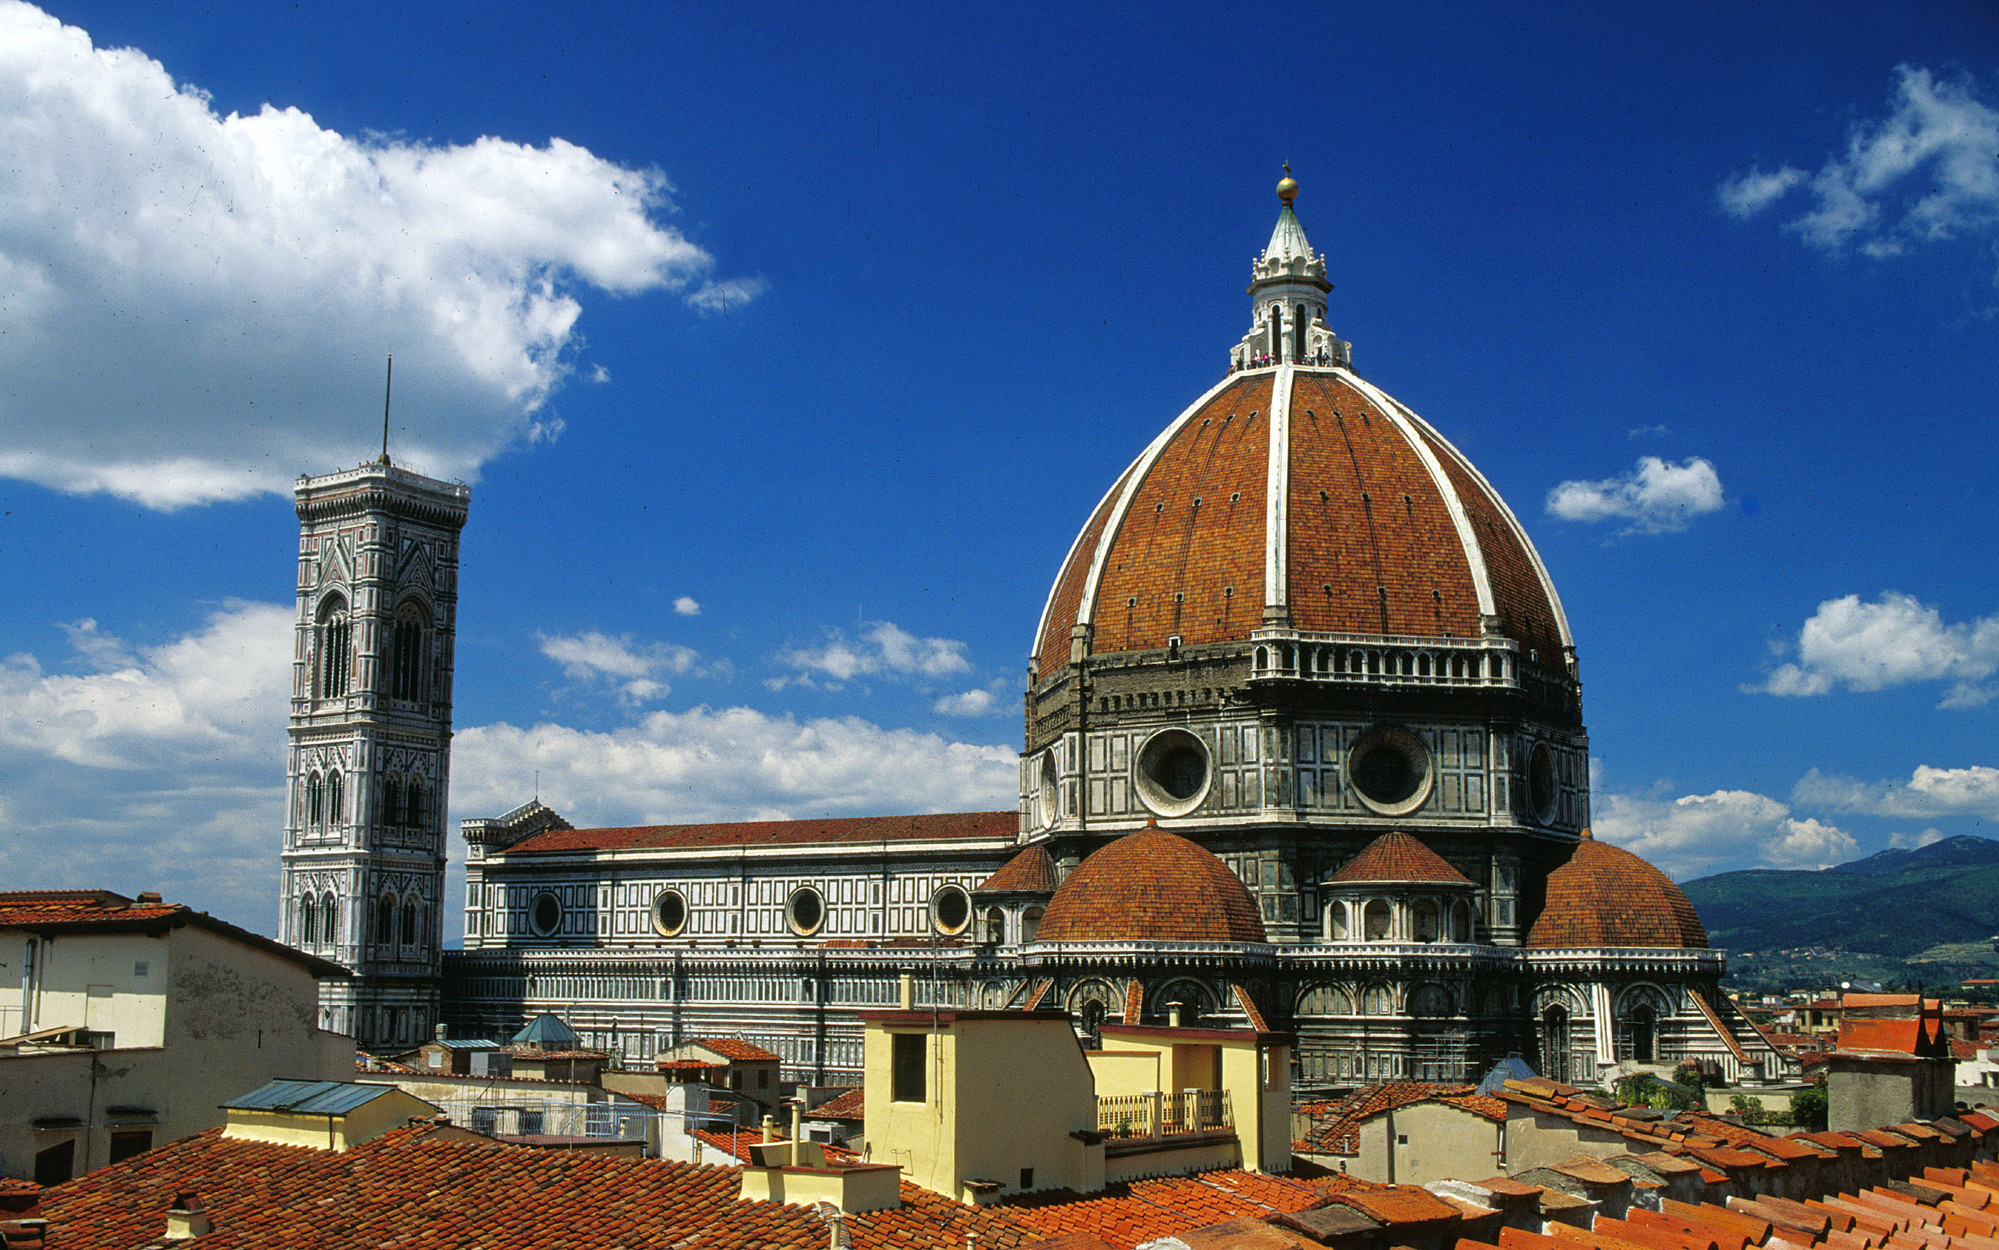 4d4b1ace 66c6 4033 bc3f 7467ff83b943 7619 florence exclusive guided florence duomo tour with priority access to accademia gallery 01